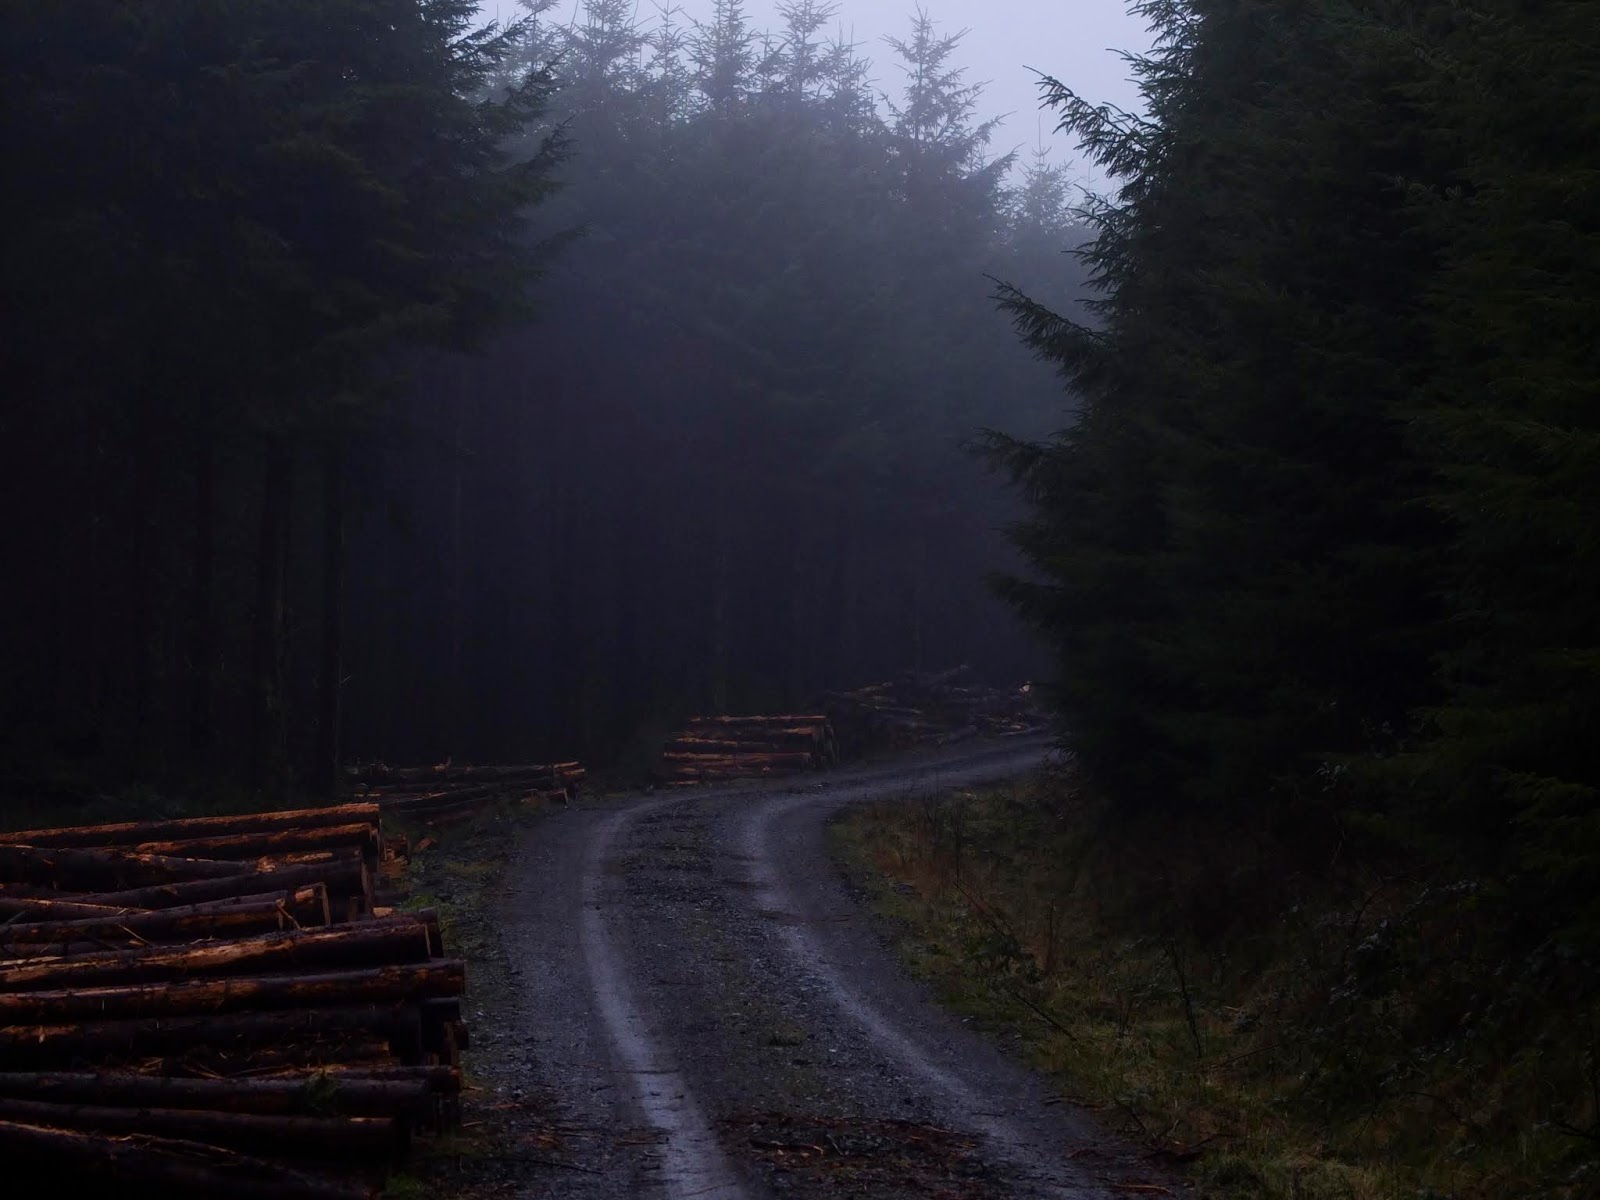 A curved road in the forest with cut logs on one side in the fog.